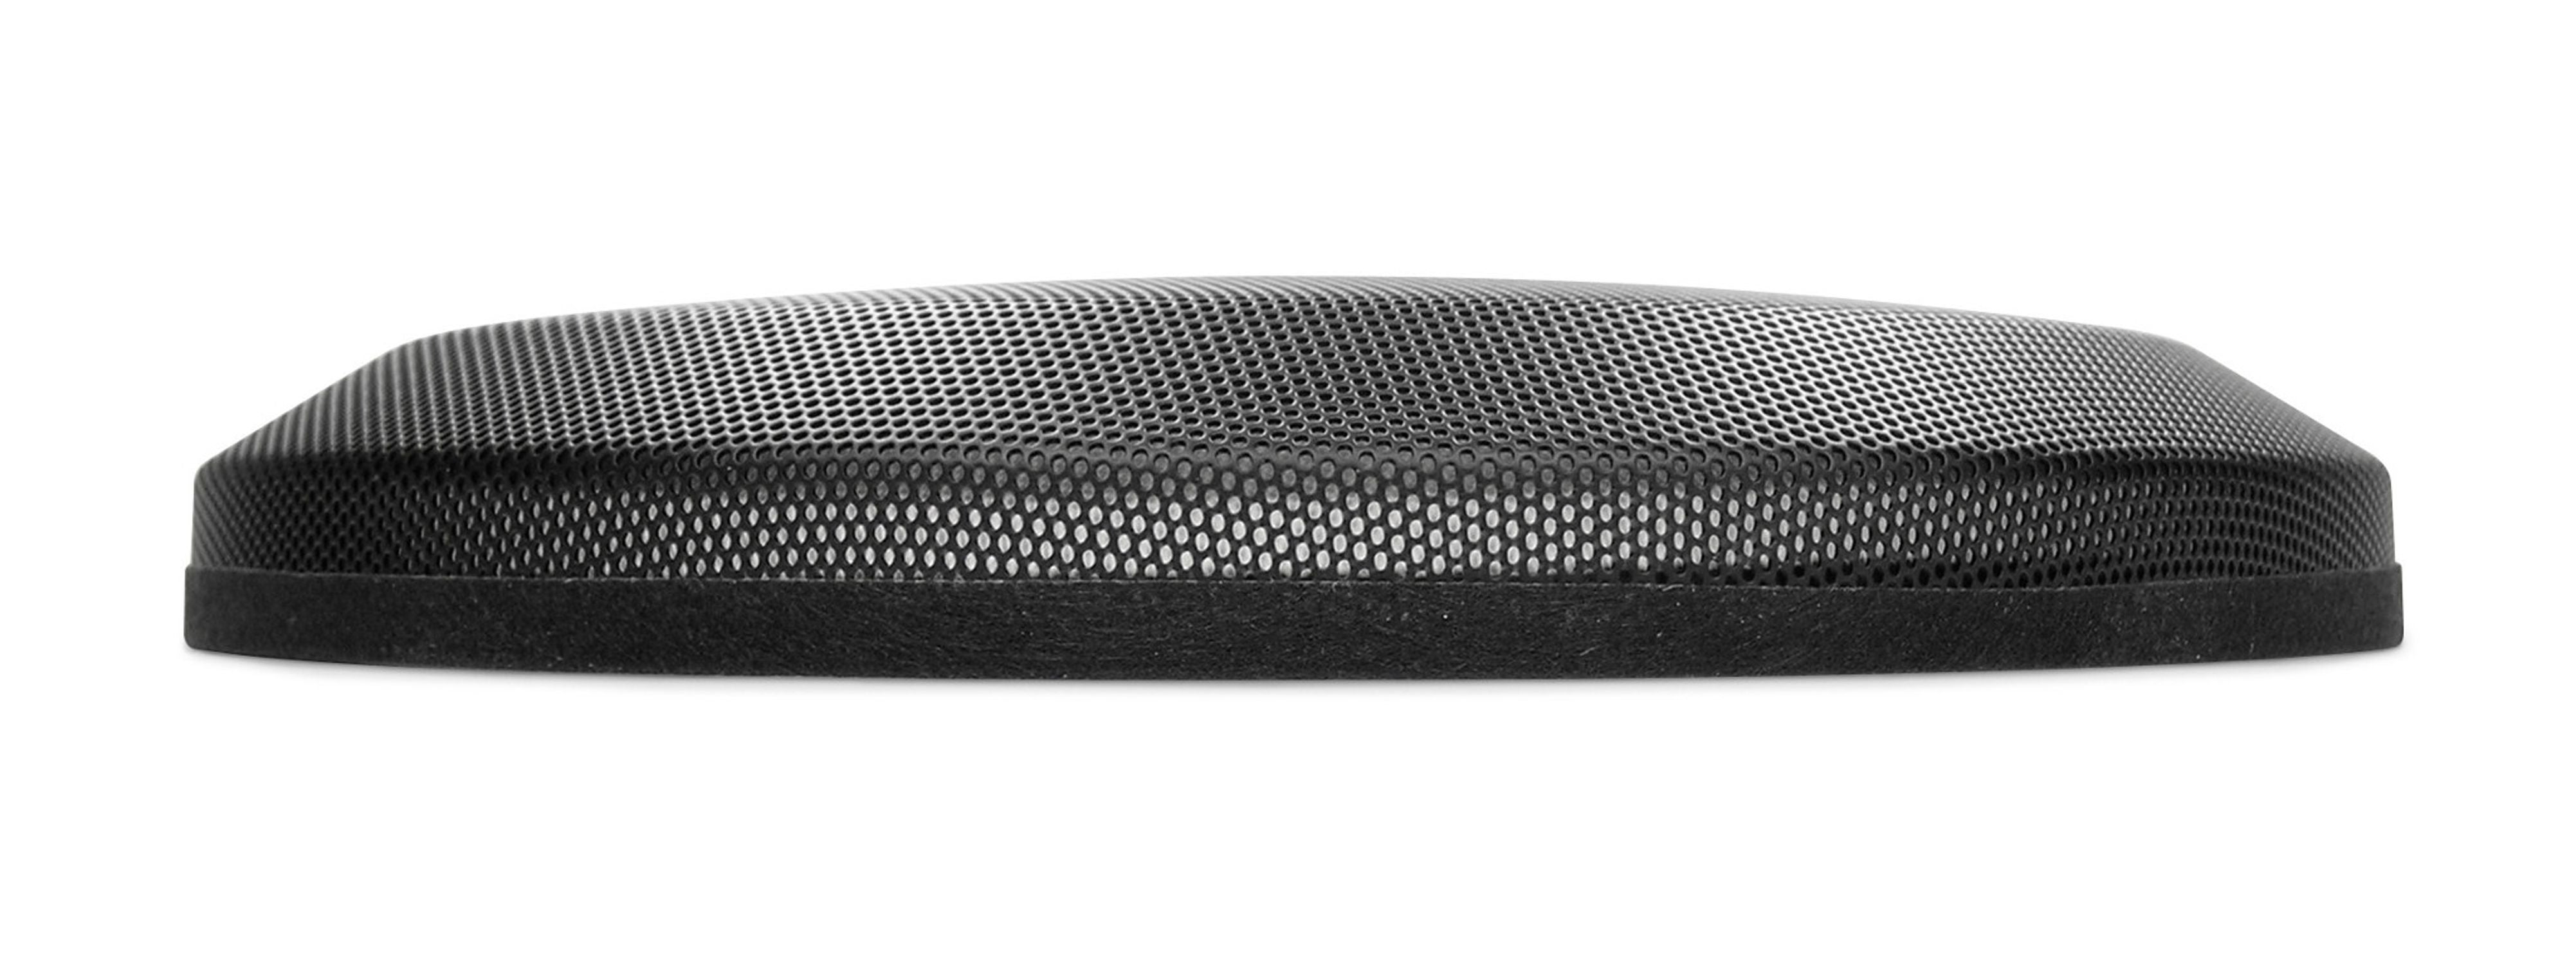 Profile of SGRU Speaker Grille